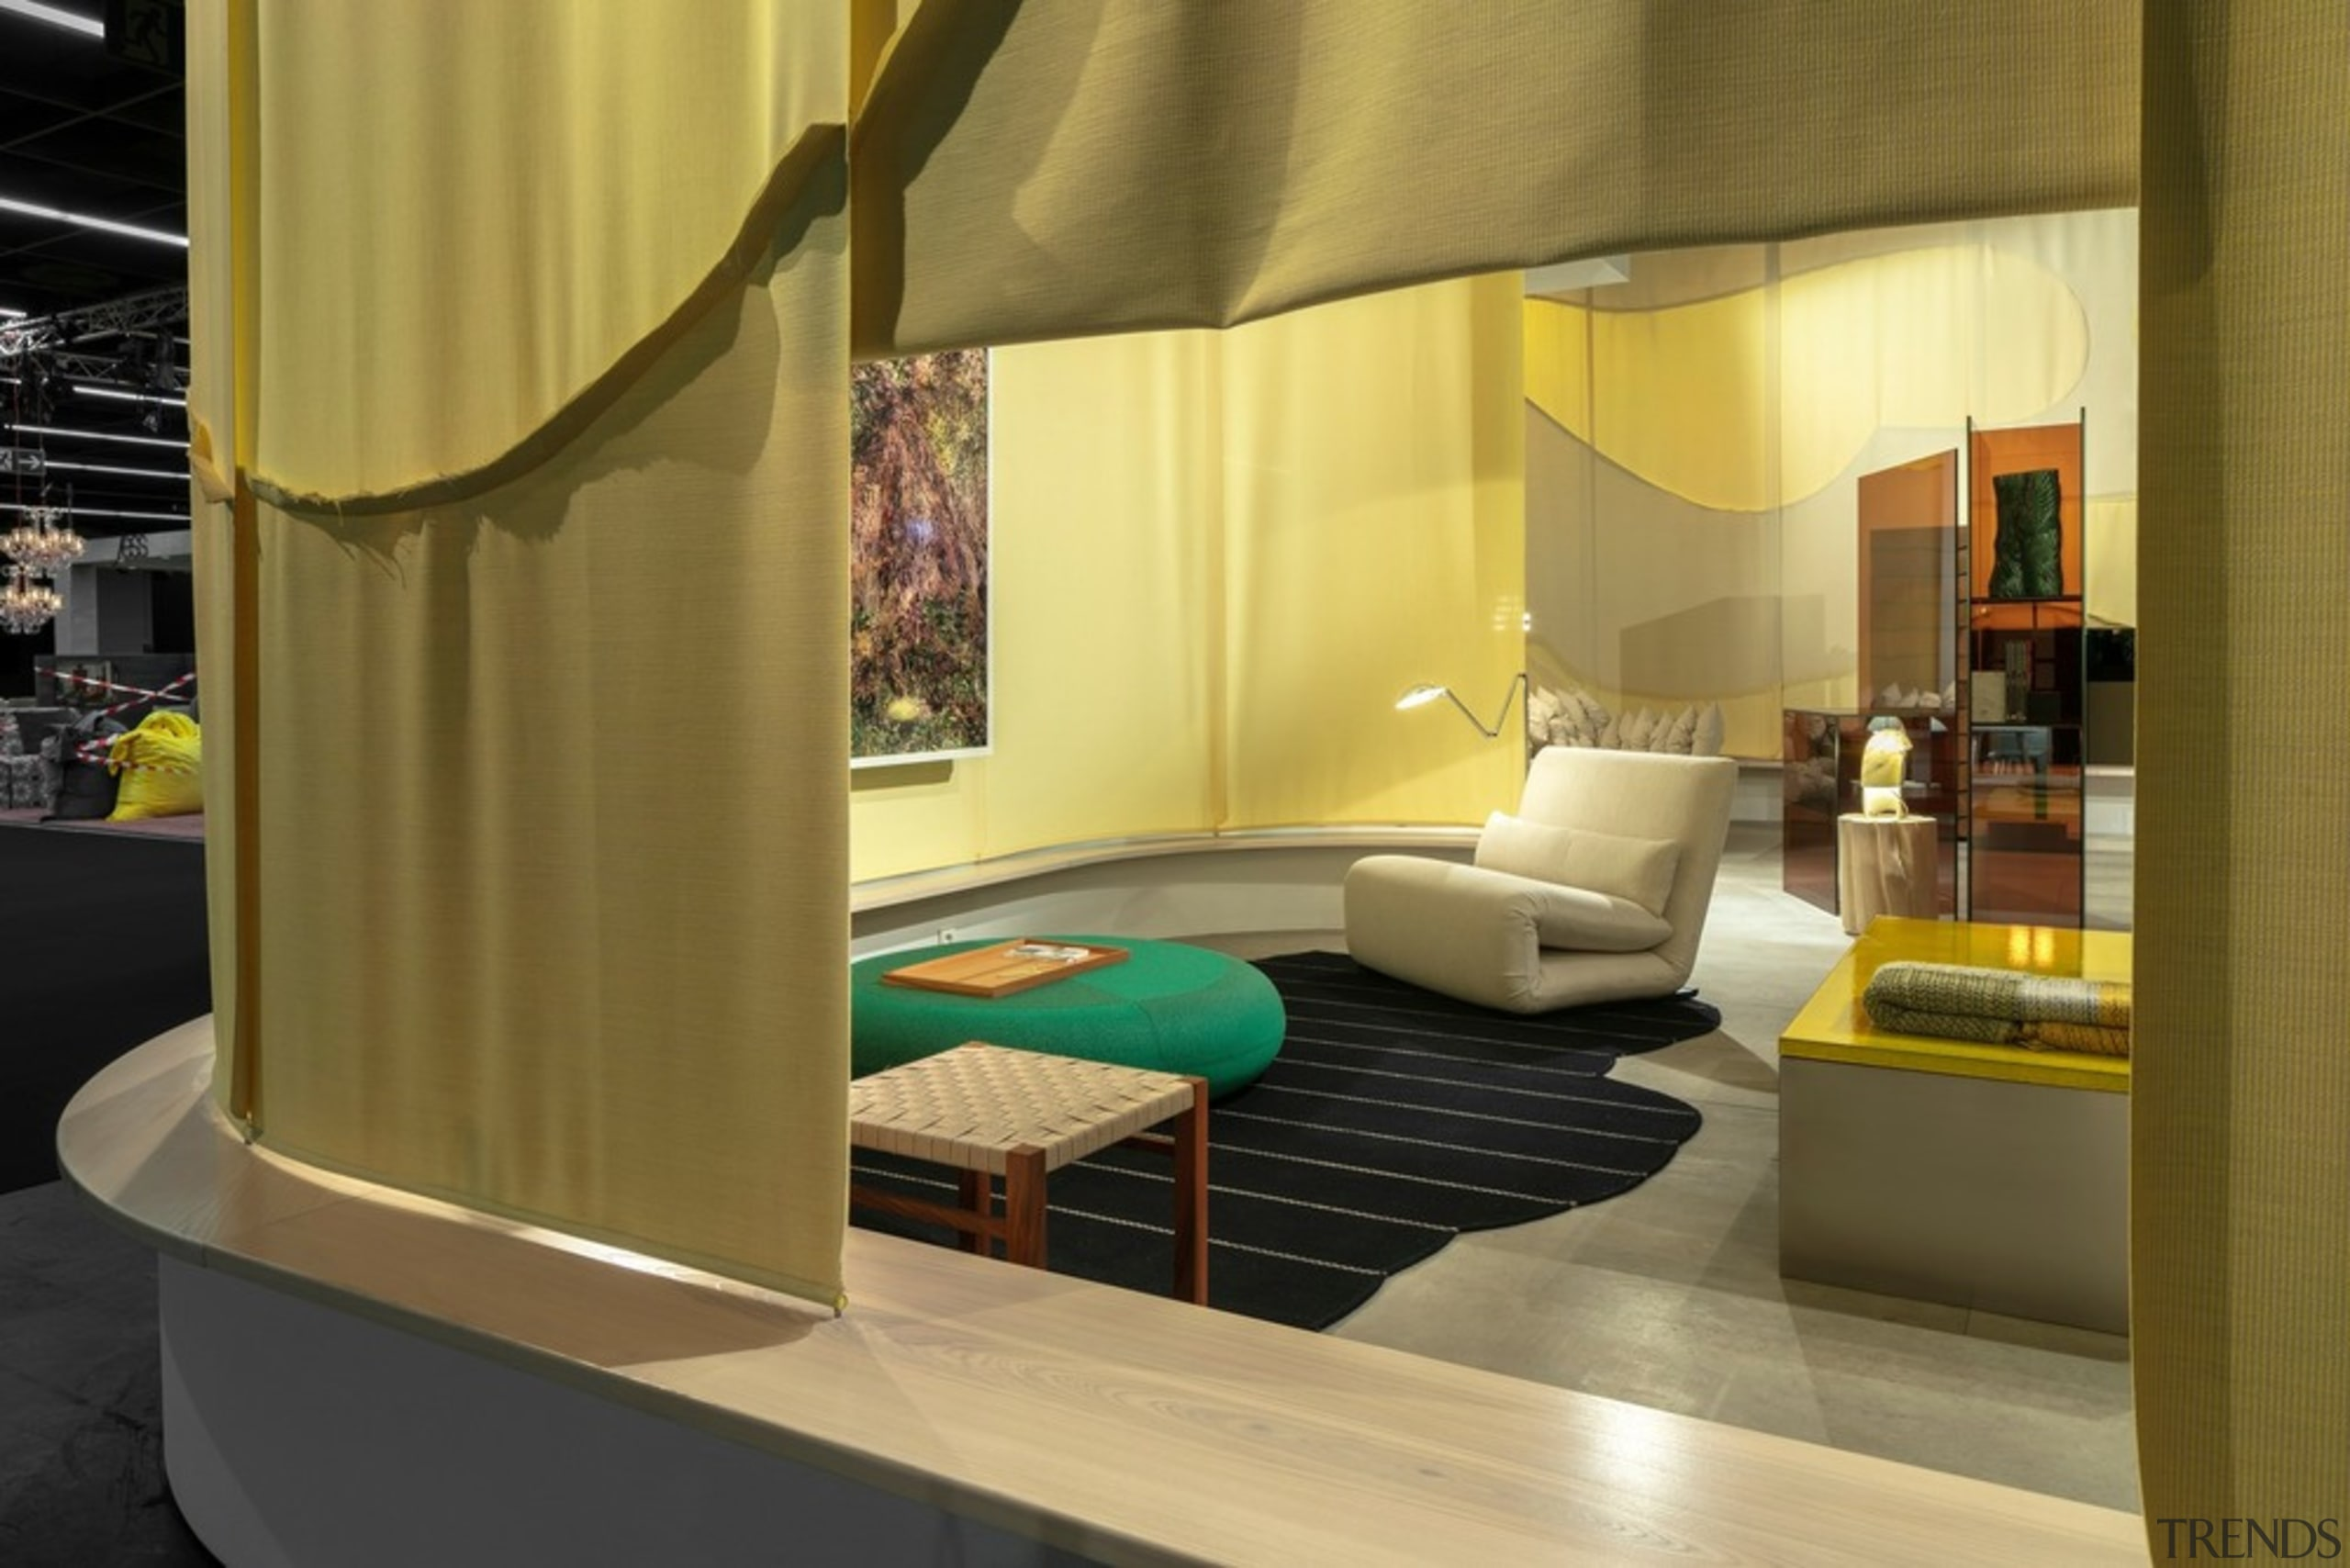 """A view through a curtain """"window"""" into the architecture, bed, building, ceiling, couch, design, floor, furniture, house, interior design, living room, property, room, suite, table, yellow, brown"""